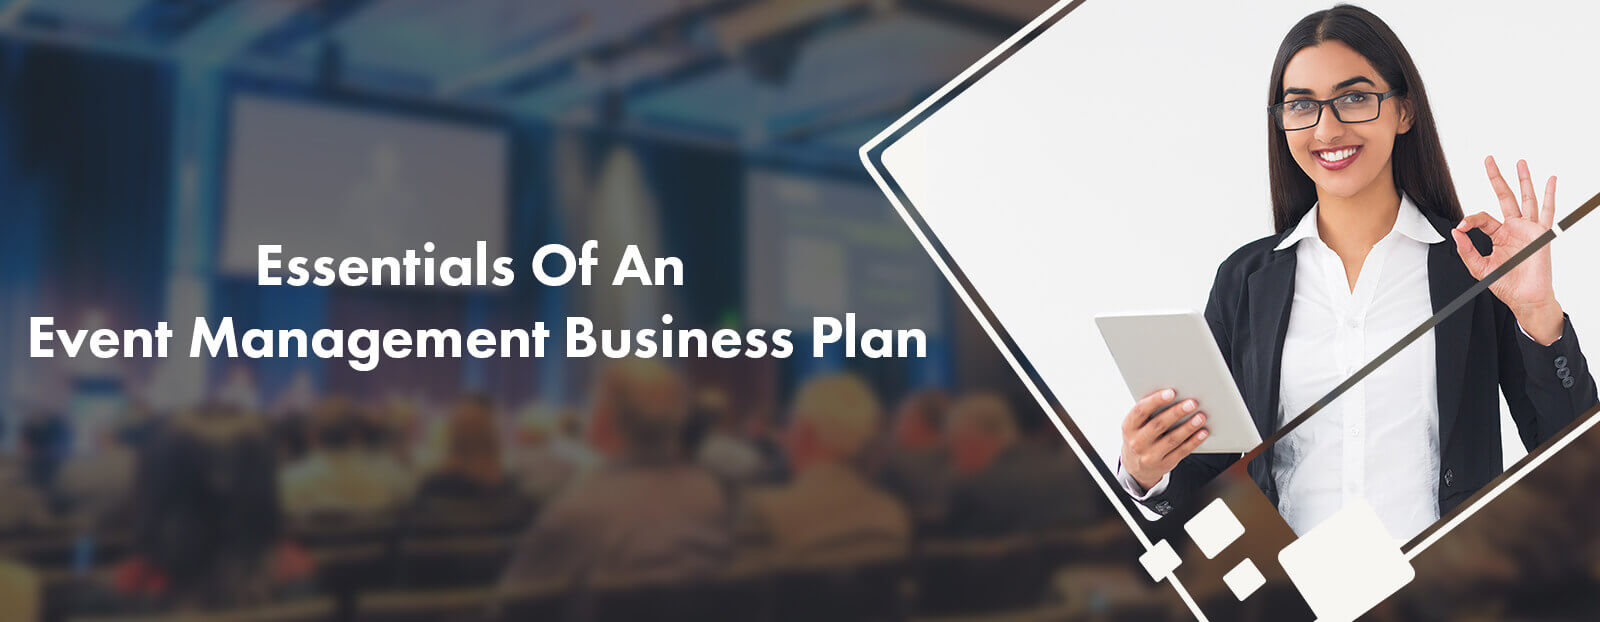 Essentials Of An Event Management Business Plan